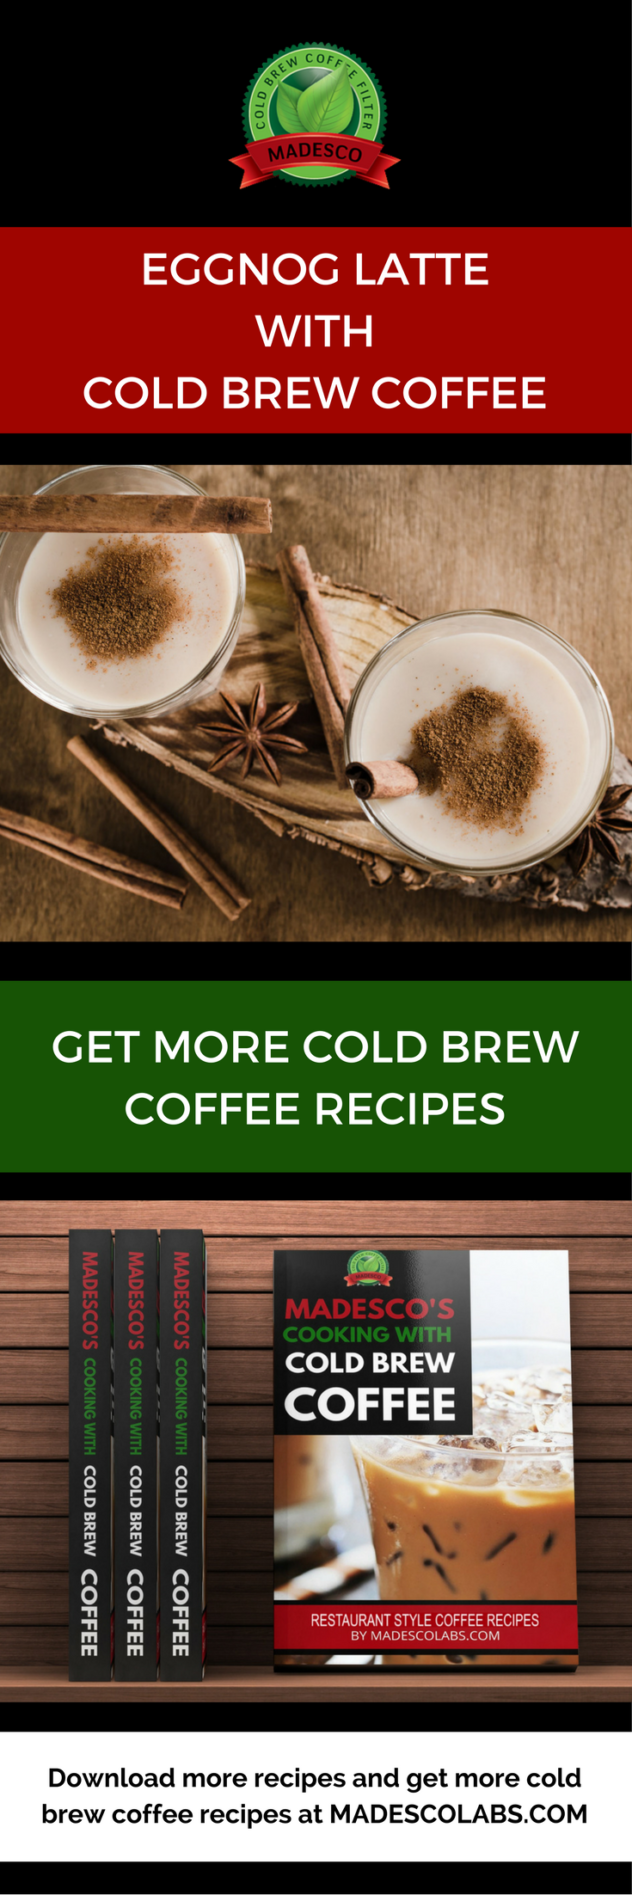 Eggnog latte with cold brew coffee